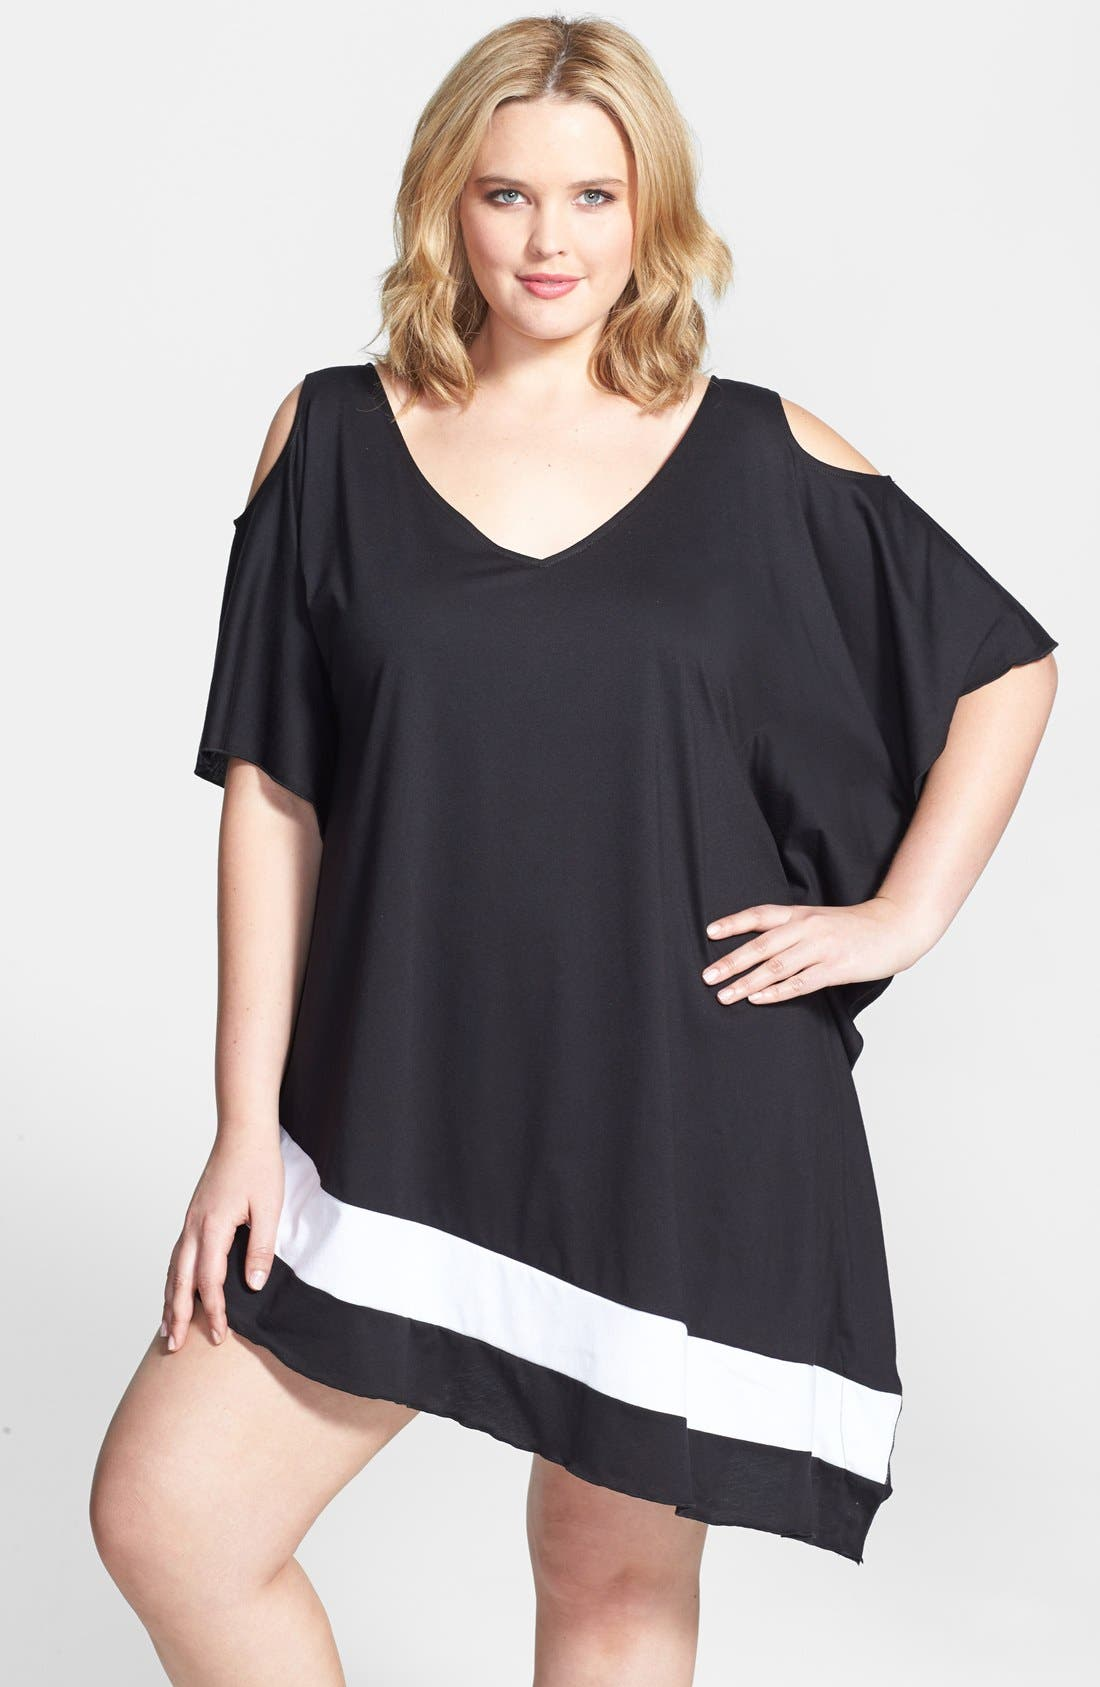 Alternate Image 1 Selected - Becca Etc. 'Day & Night' Cutout Shoulder Asymmetrical Cover-Up Dress (Plus Size)